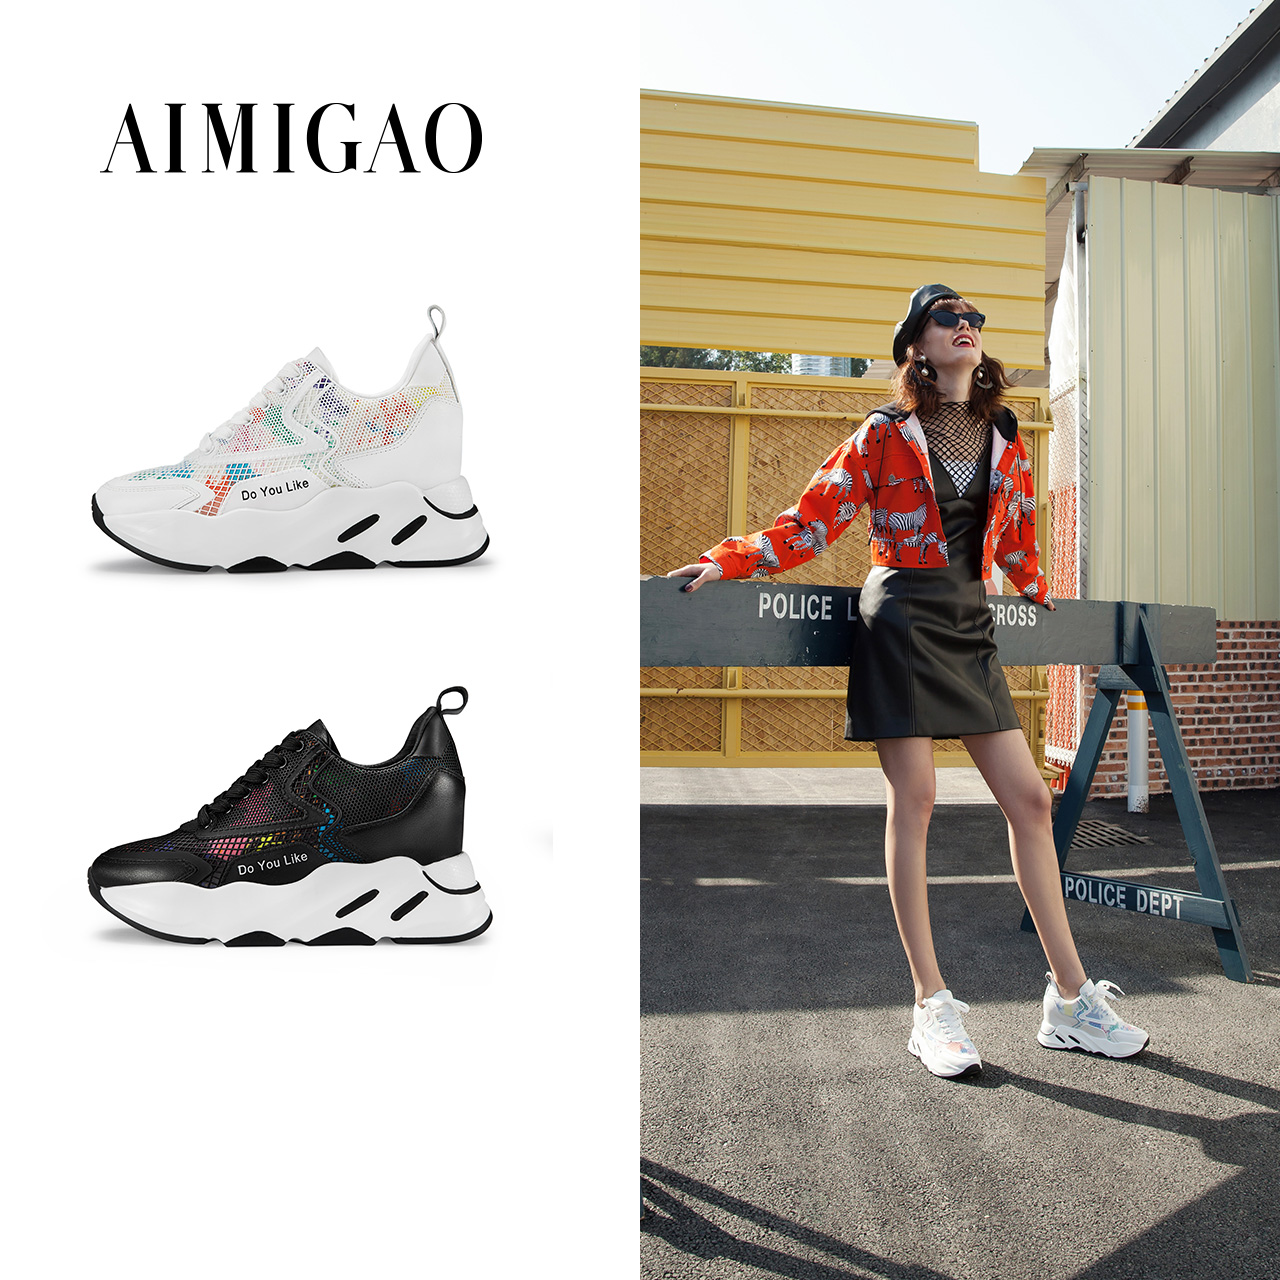 AIMIGAO Luxury Fashion Women Casual Lace-Up Sneakers Designers Flat Platform Comfortable Shoes Leather Women Casual Shoes 2018 women s shoes 2017 summer new fashion footwear women s air network flat shoes breathable comfortable casual shoes jdt103